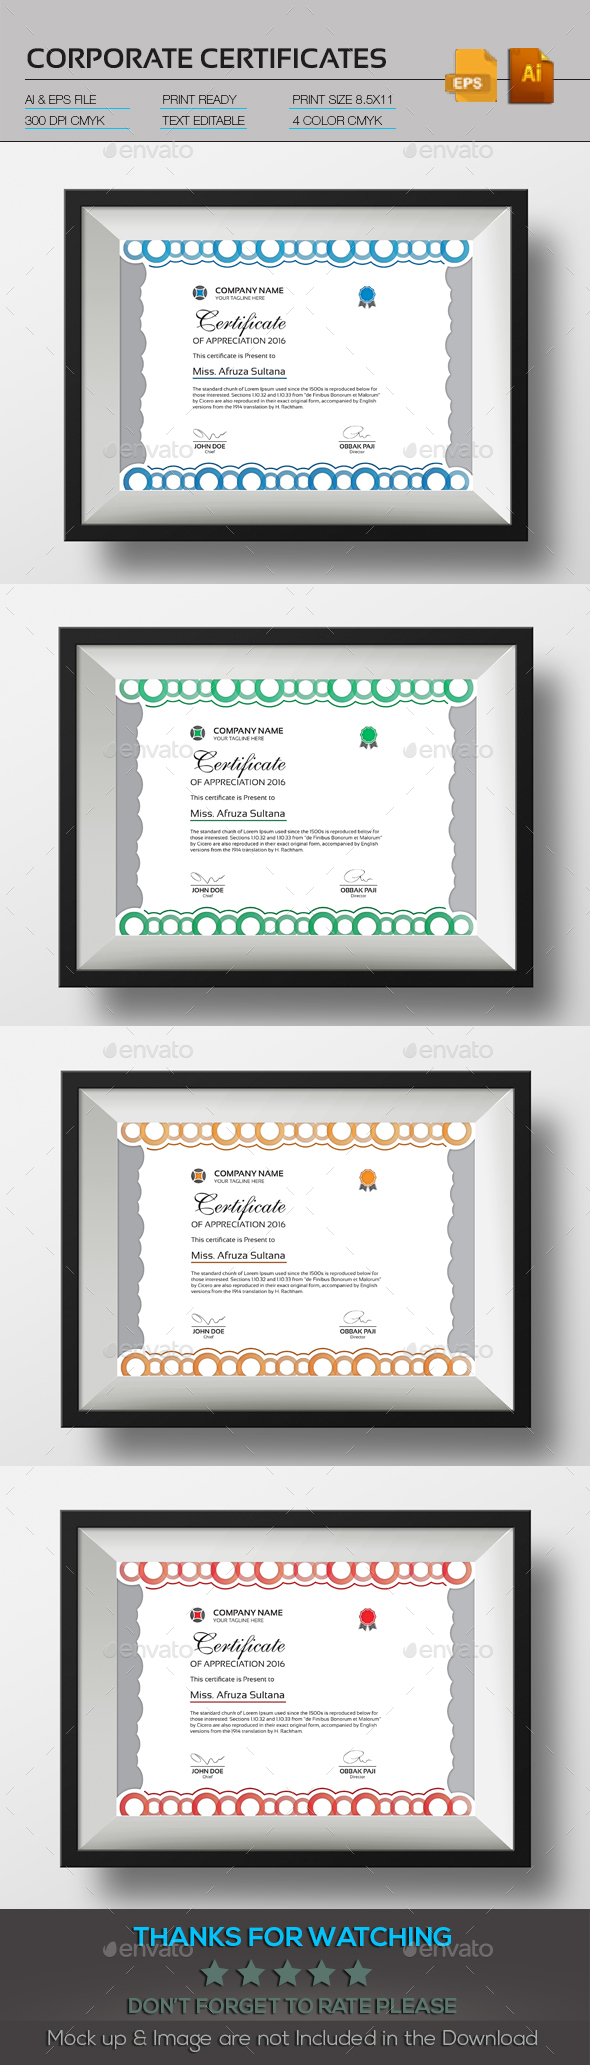 Corporate Certificate - Stationery Print Templates